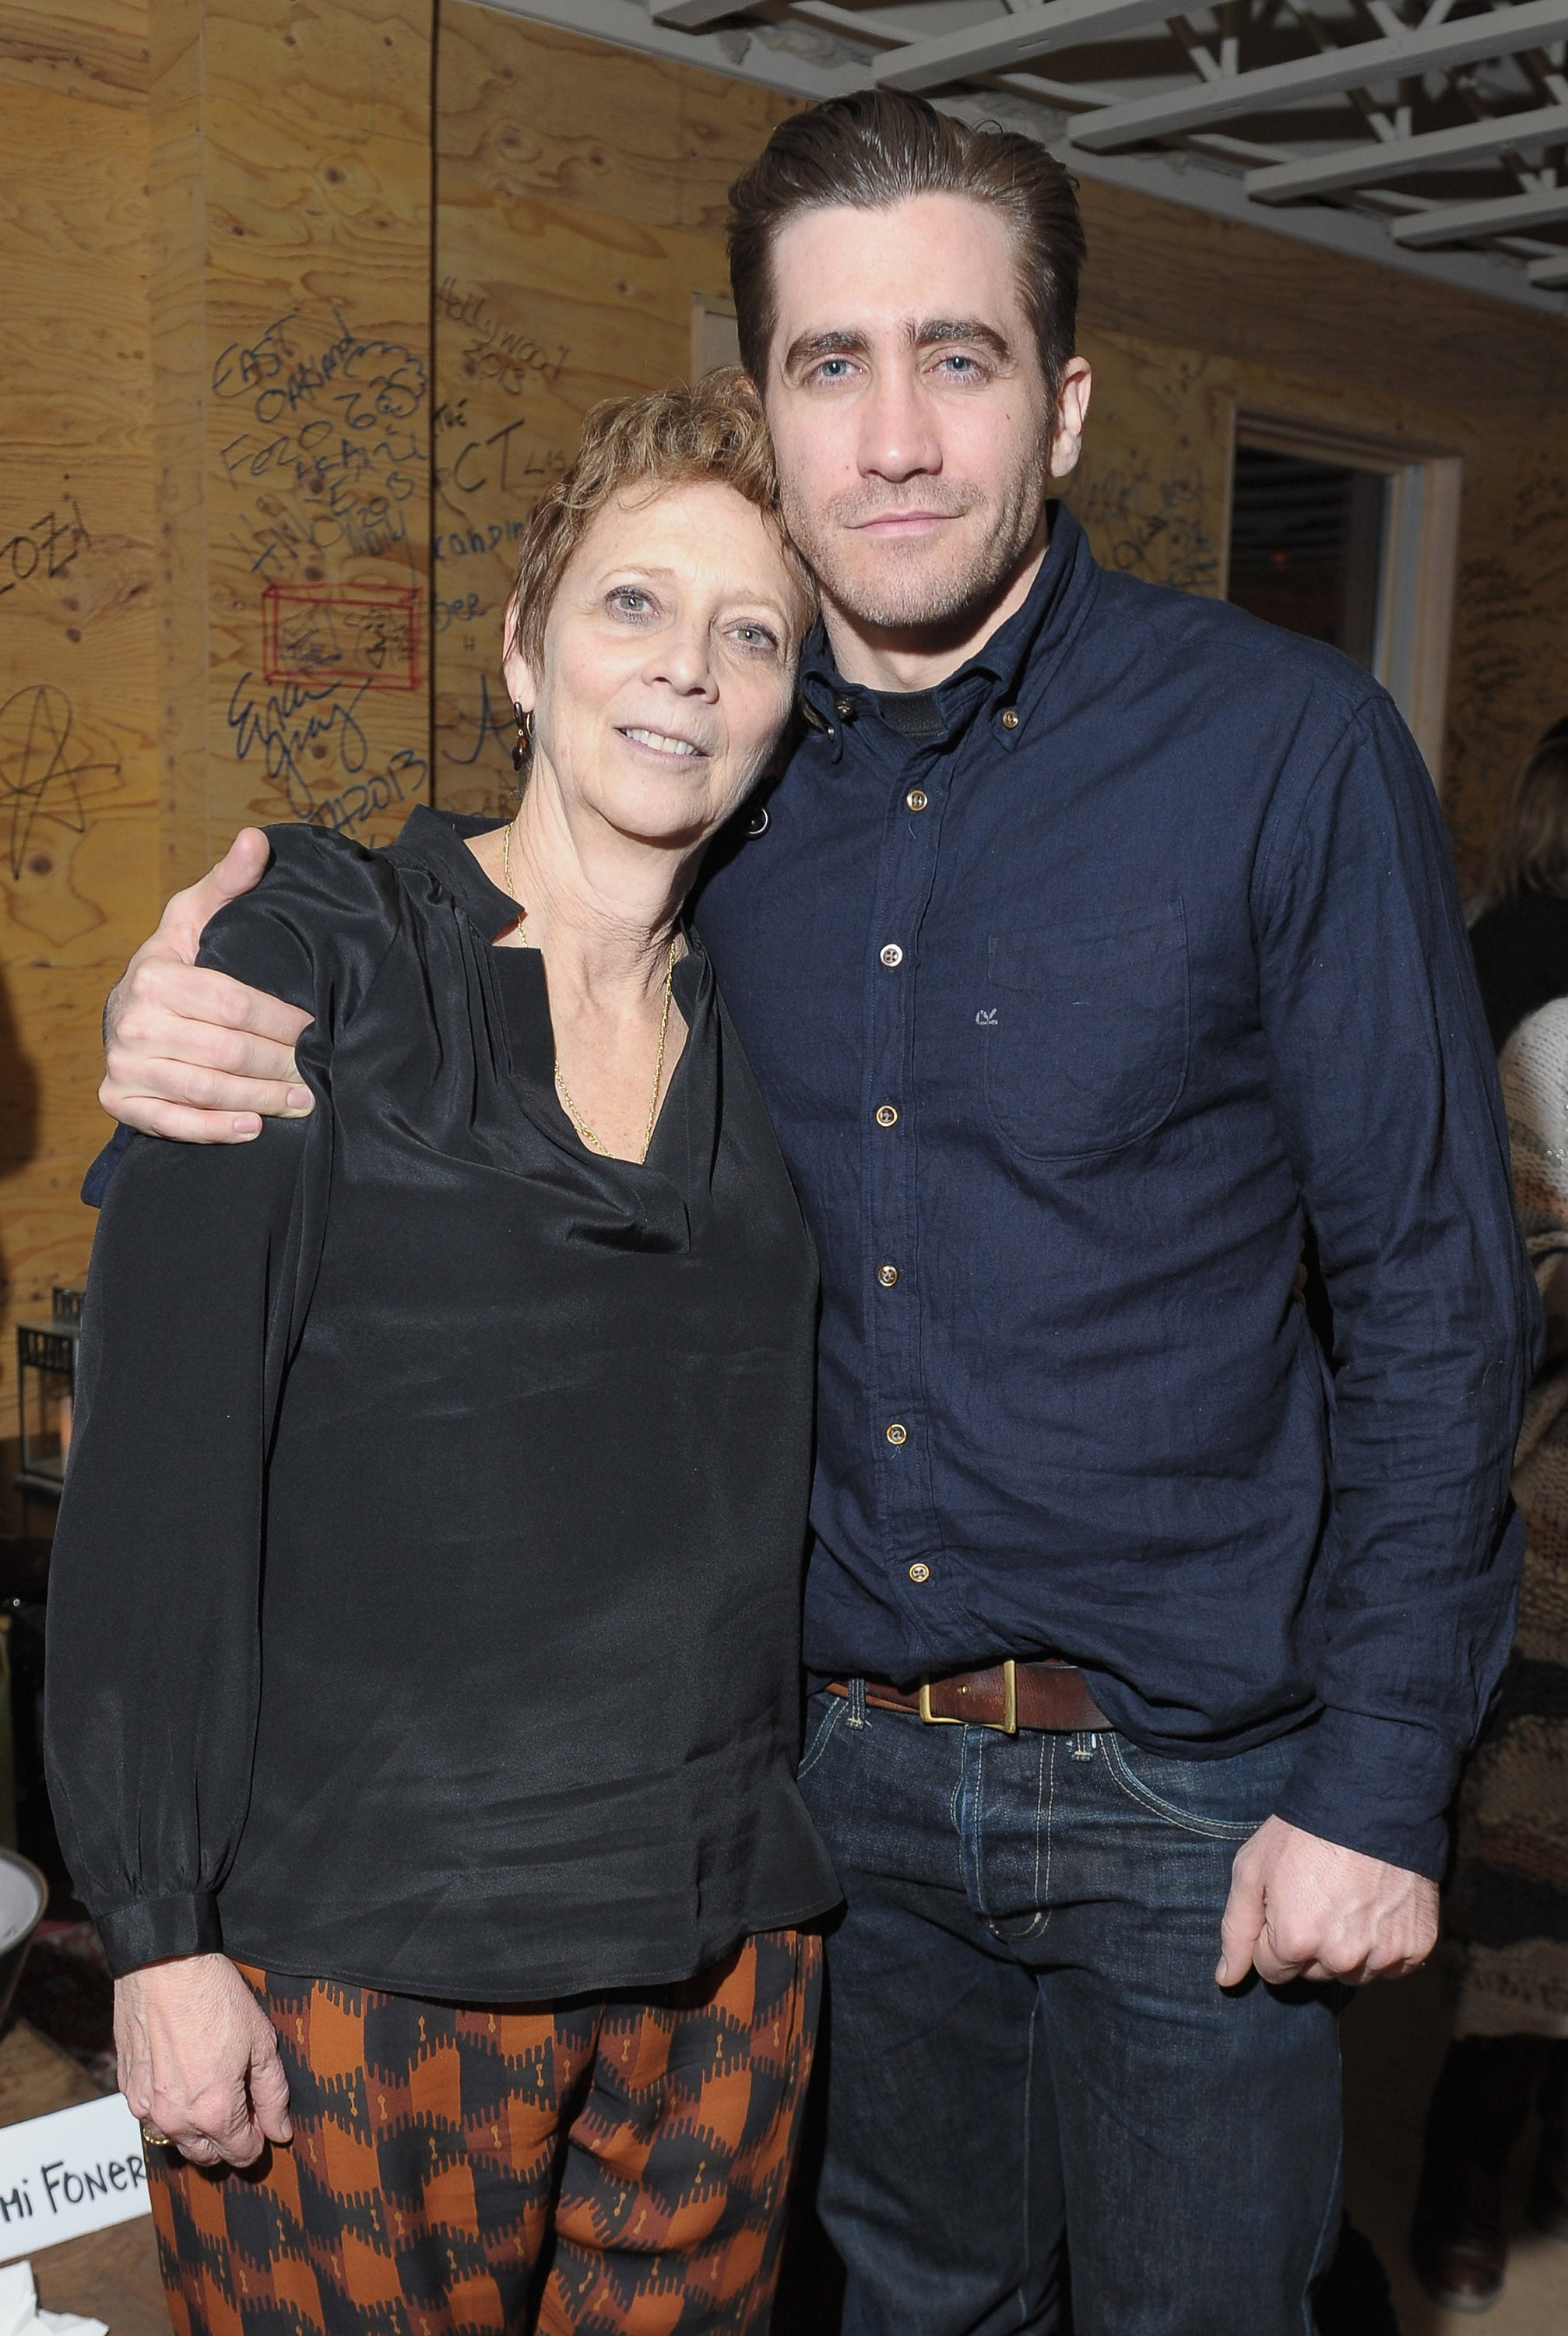 Jake Gyllenhaal hung out with his mom, Naomi Foner, at the afterparty for Very Good Girls in 2013.